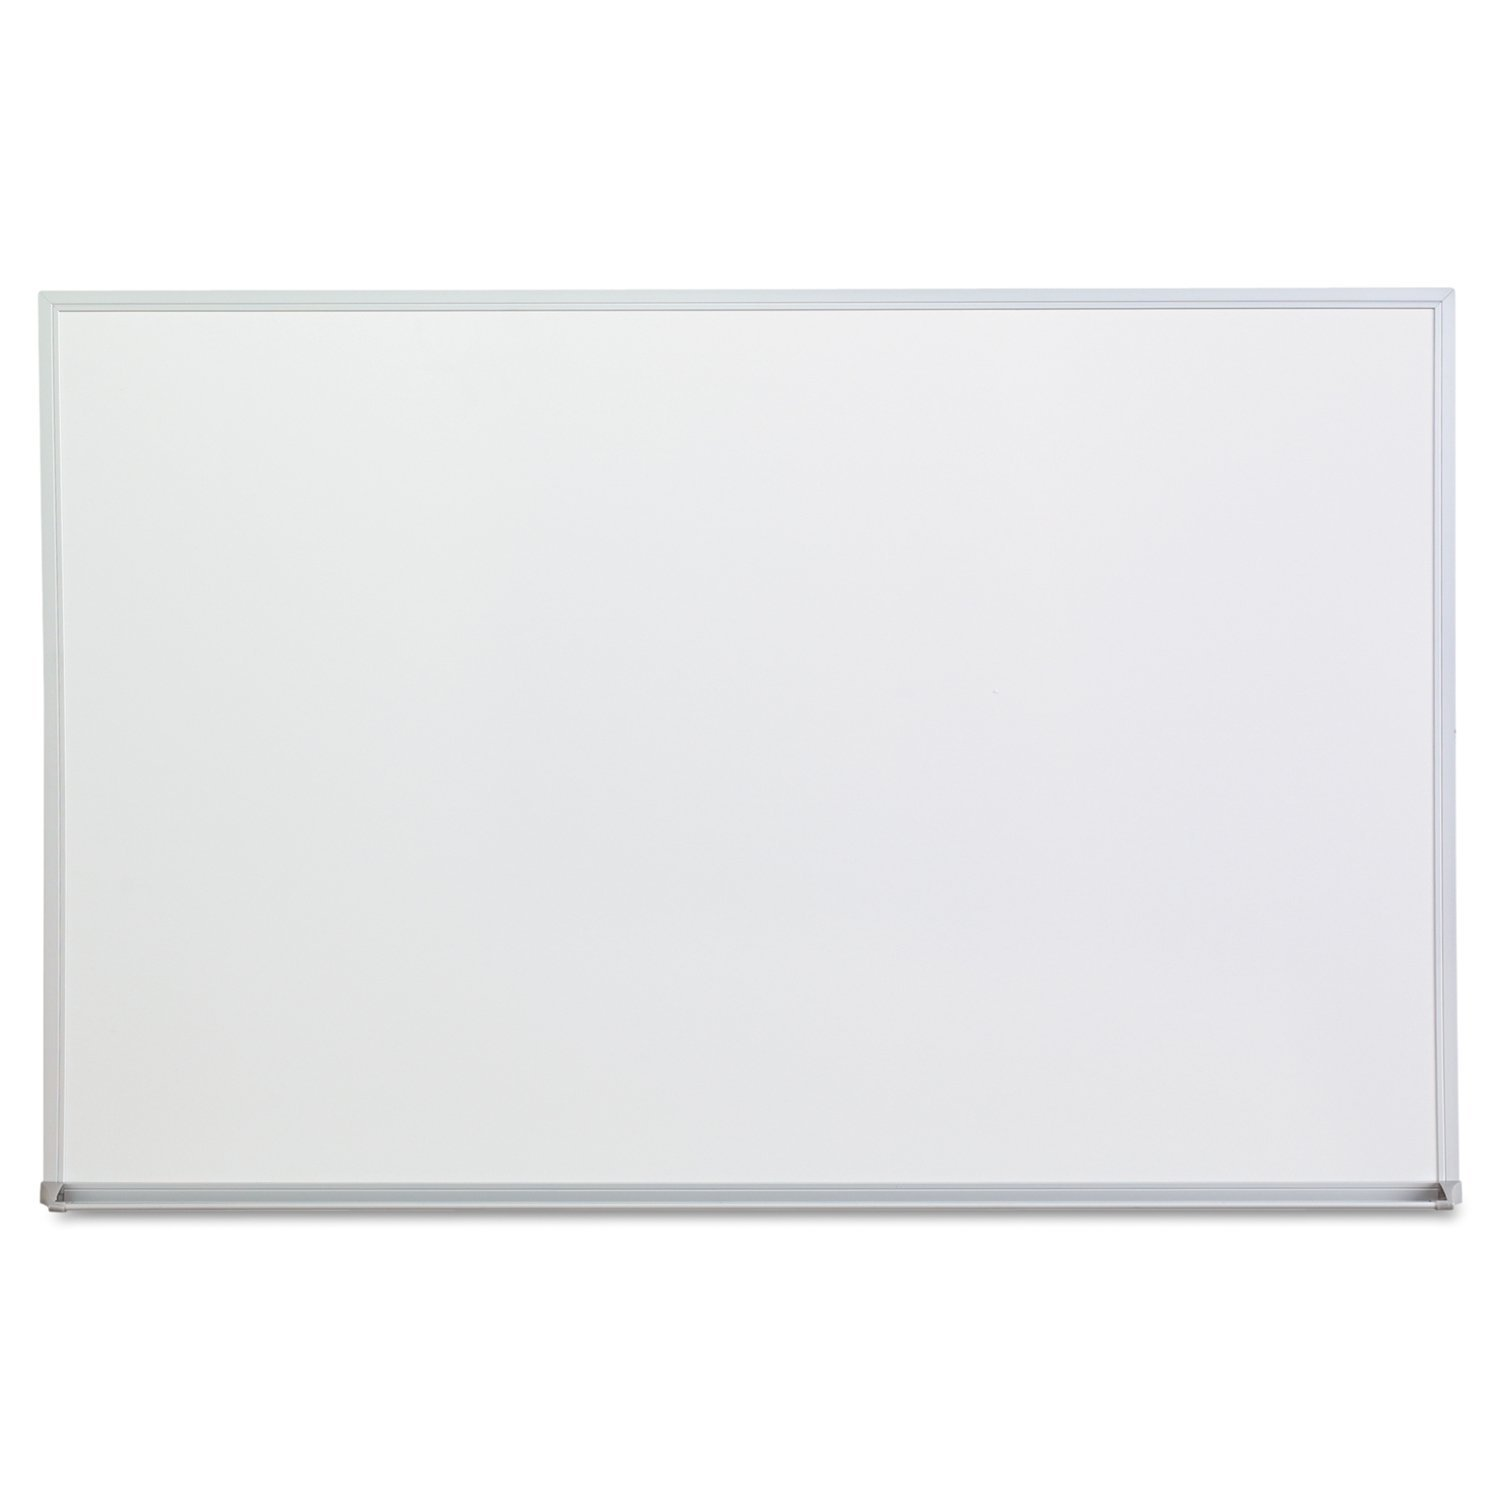 Universal Melamine Dry Erase Board, 36 X 24 Inches Satin-Finished Aluminum (43623) 50087547436238